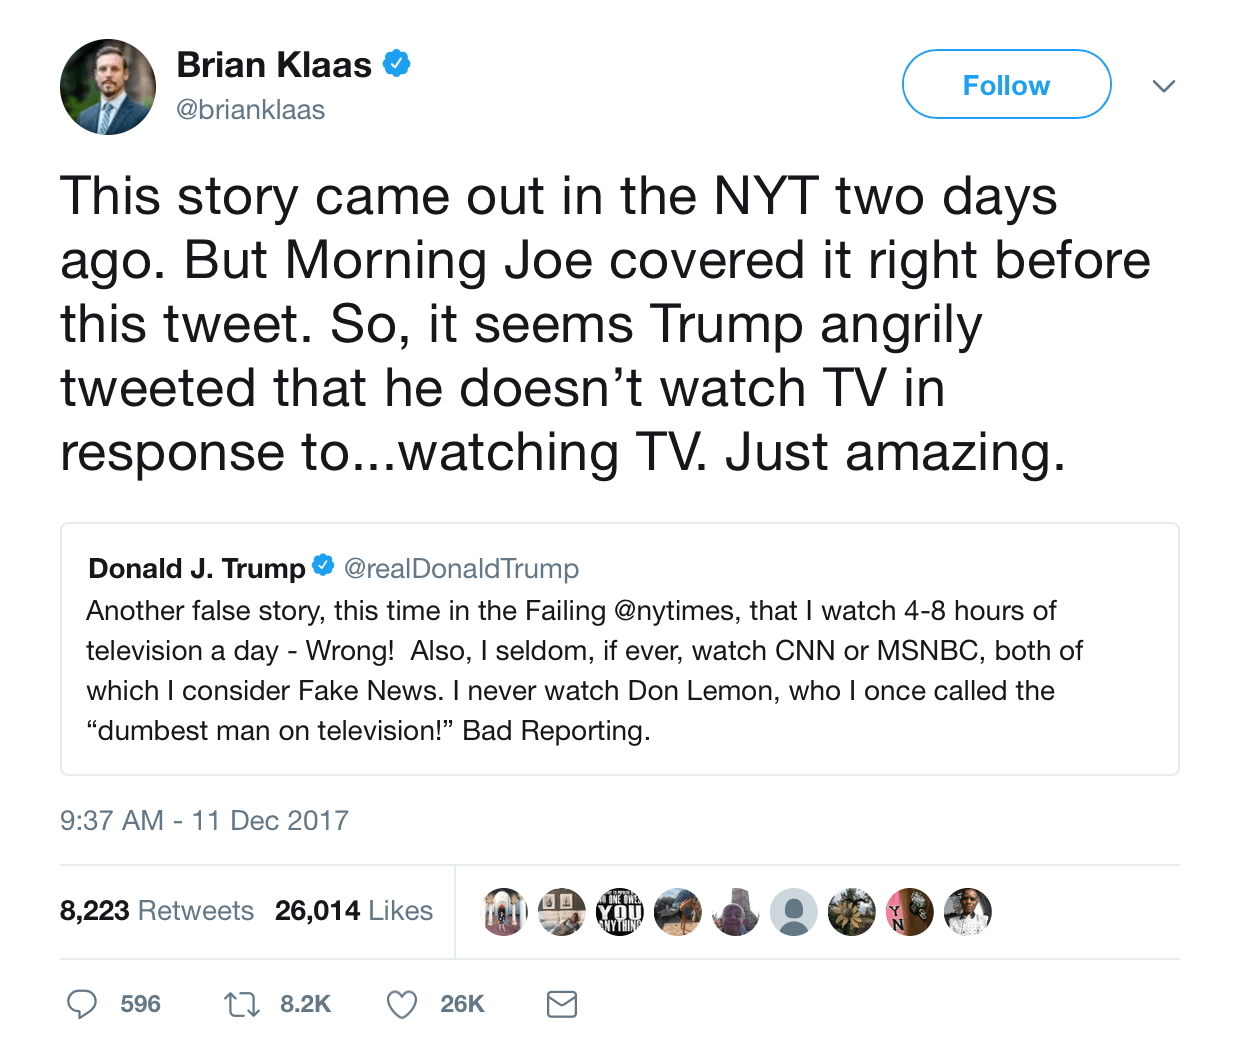 A screenshot of a tweet from Brian Klaas